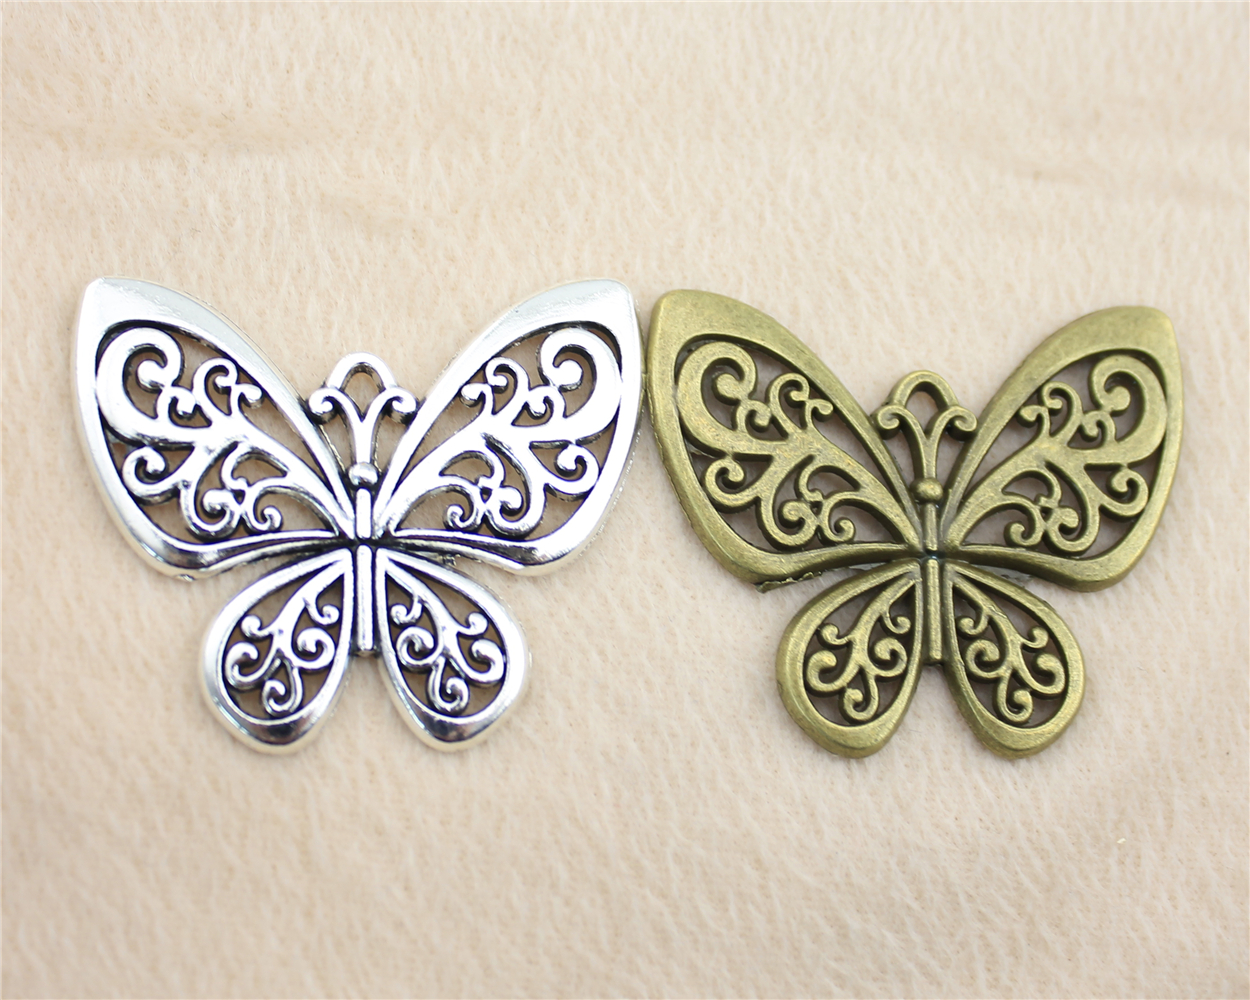 Nº3 unids 57*50mm vendimia plata antigua o bronce color mariposa ...